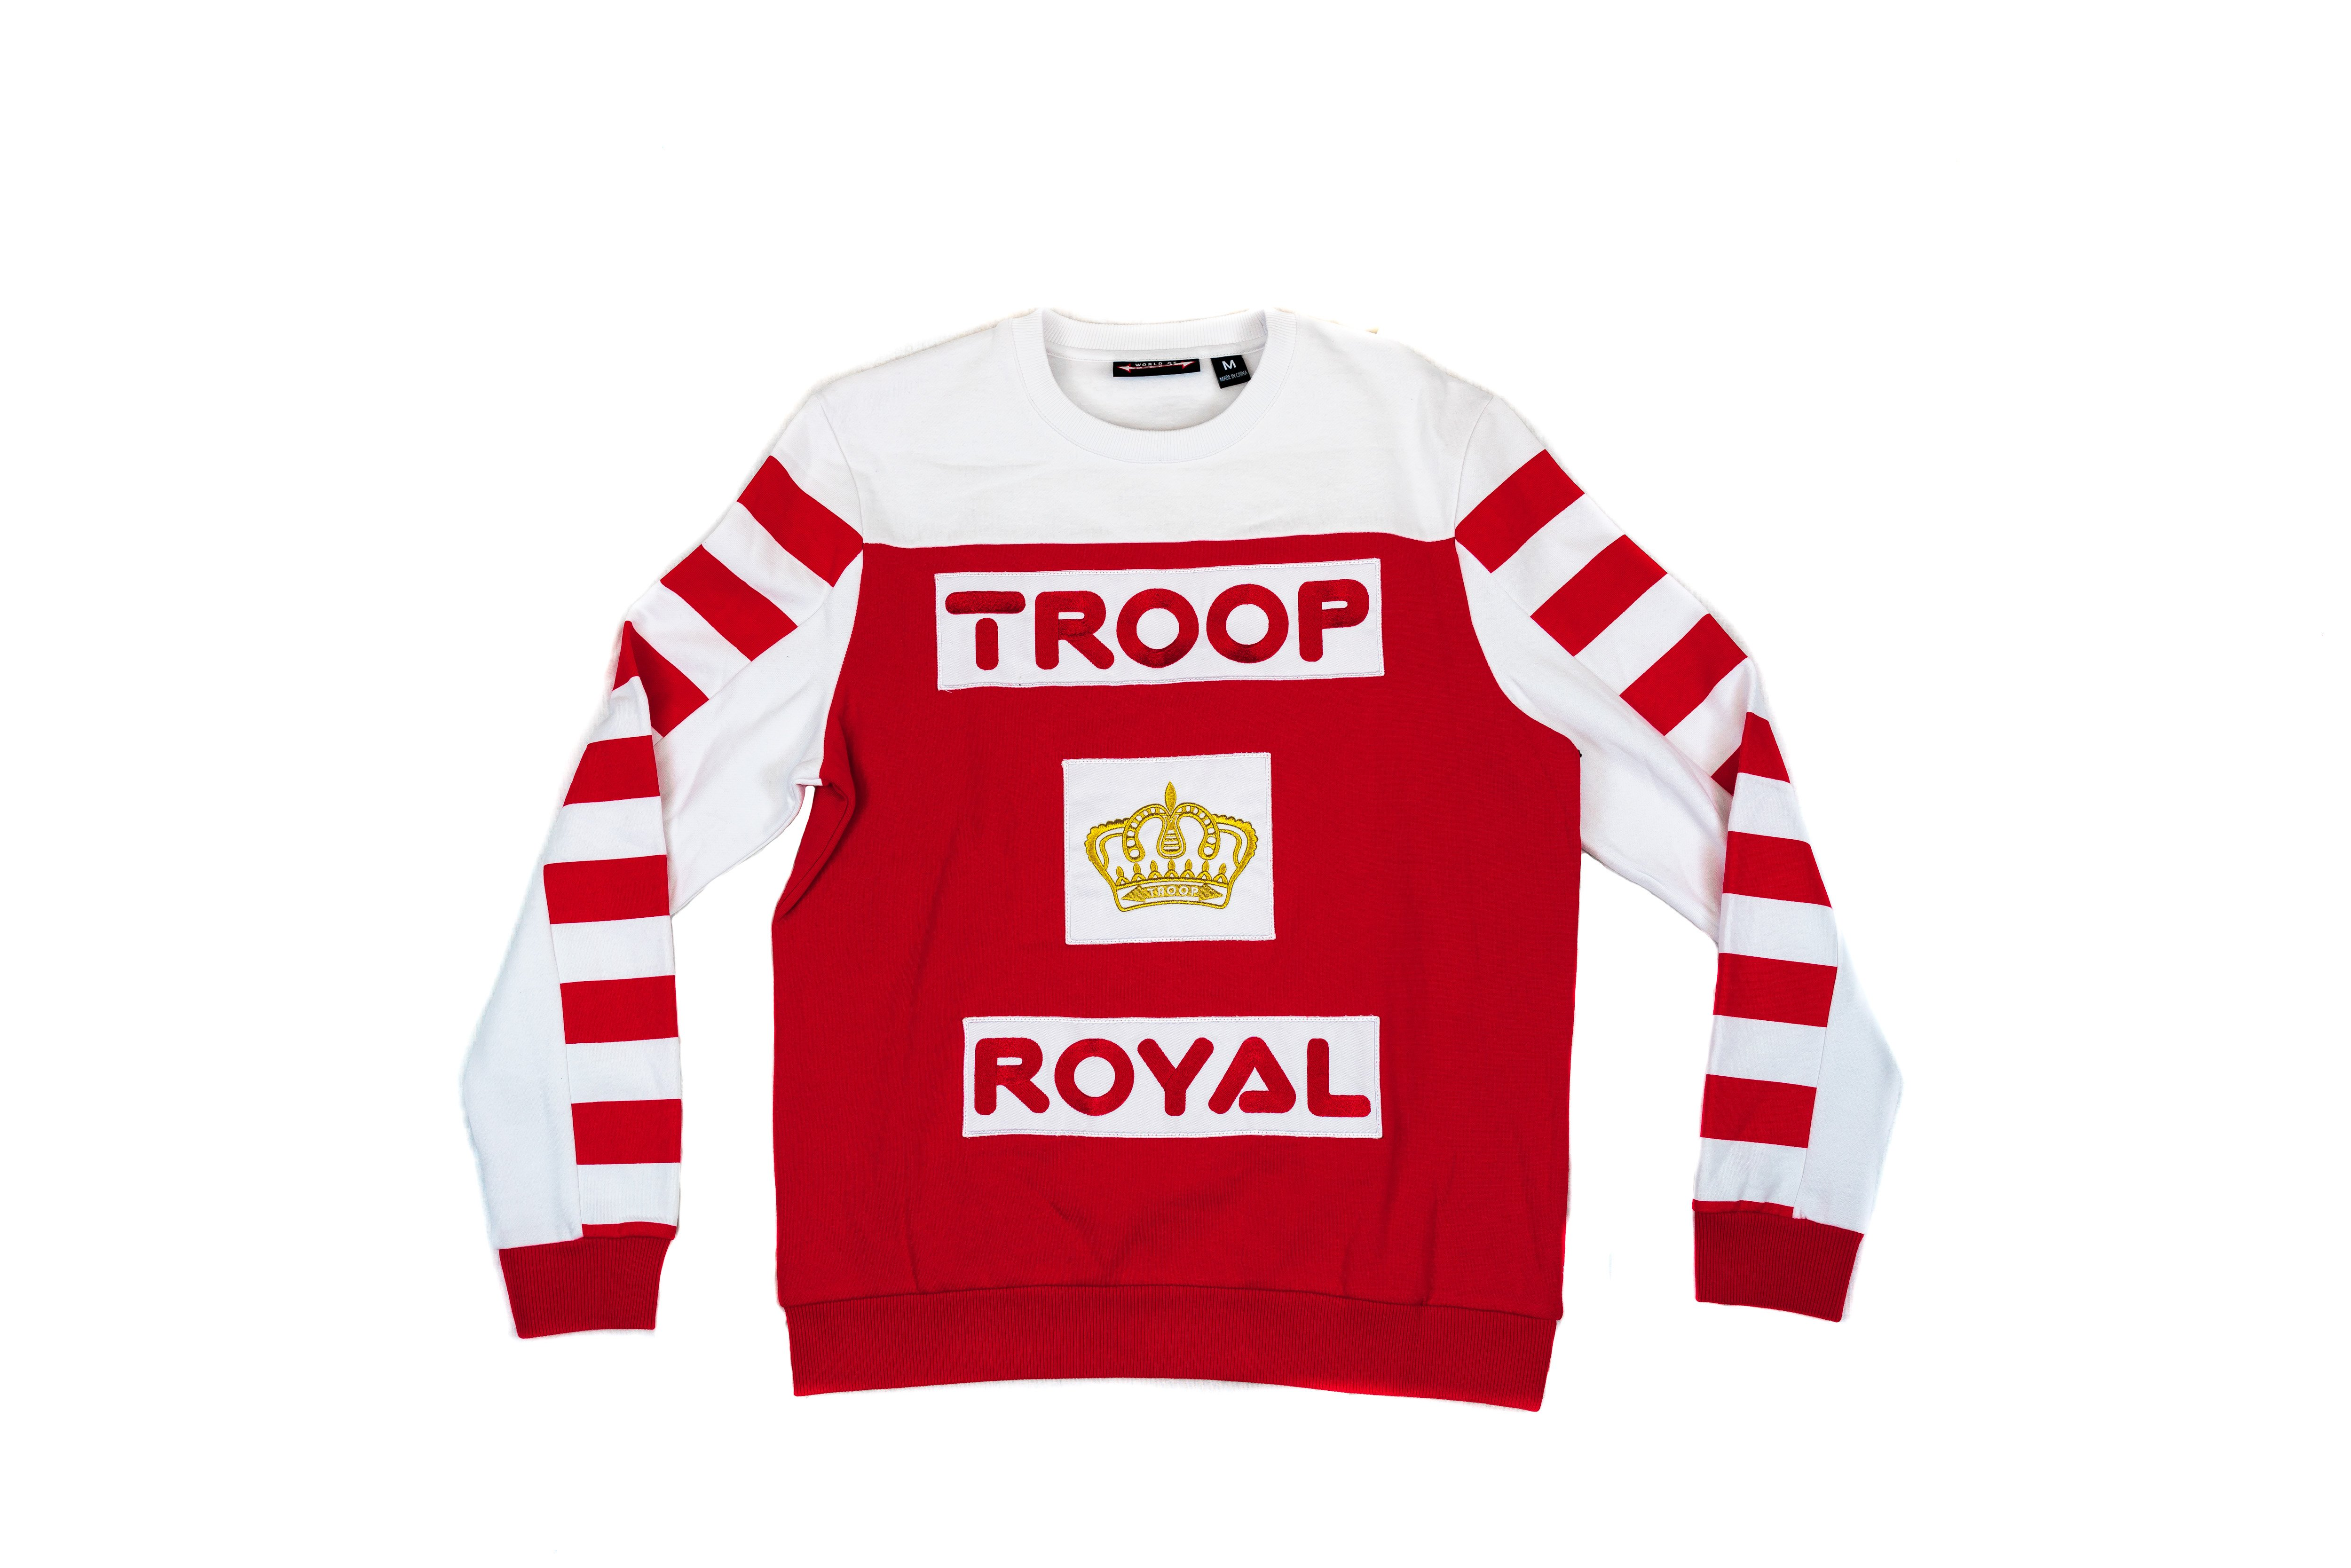 world of troop royal crew 80s apparel